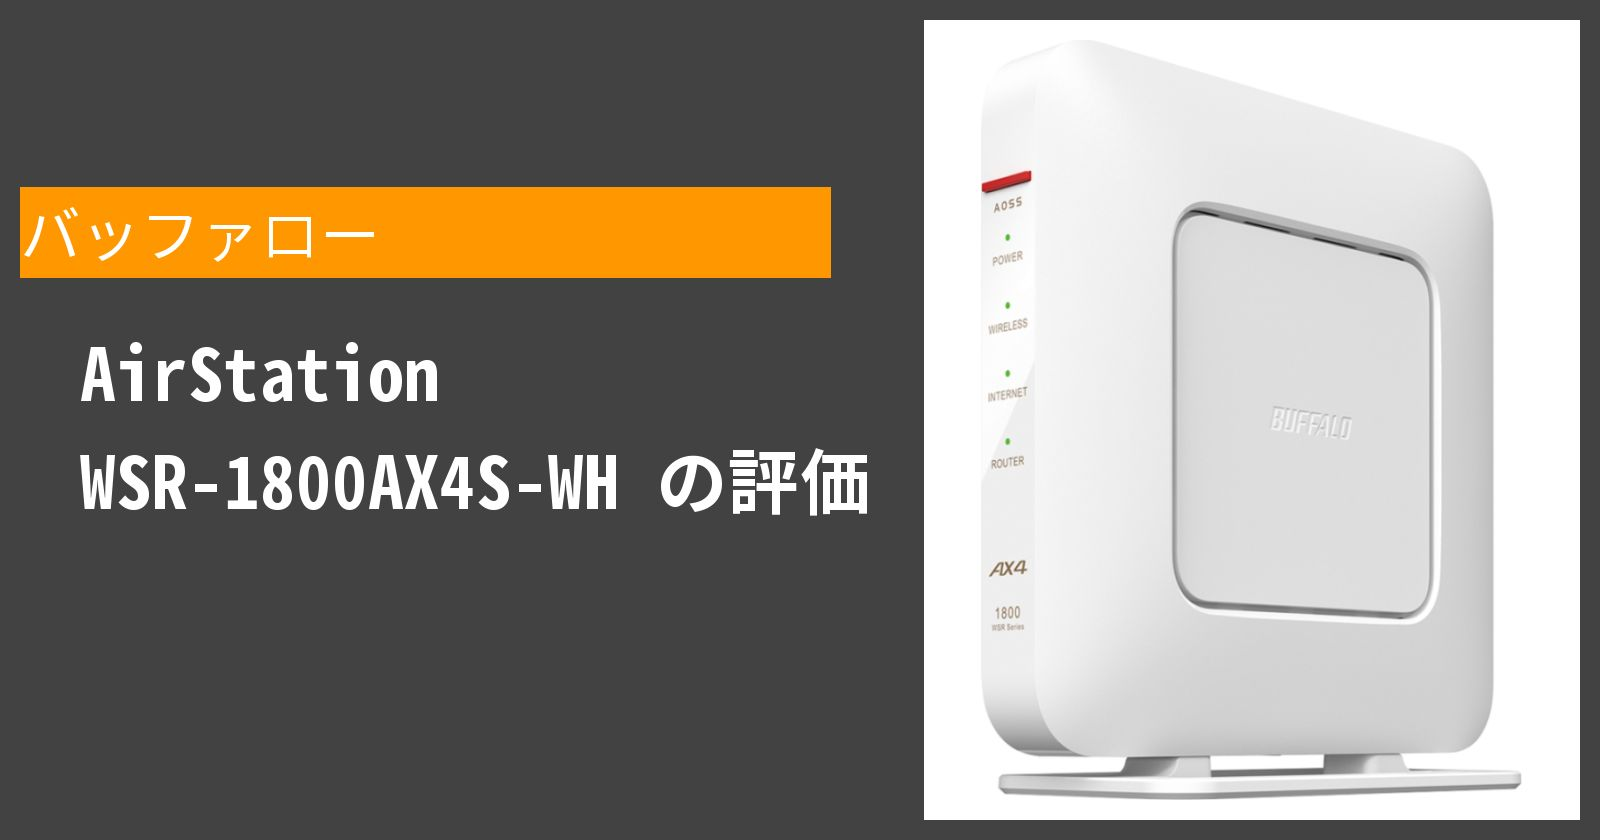 AirStation WSR-1800AX4S-WHを徹底評価